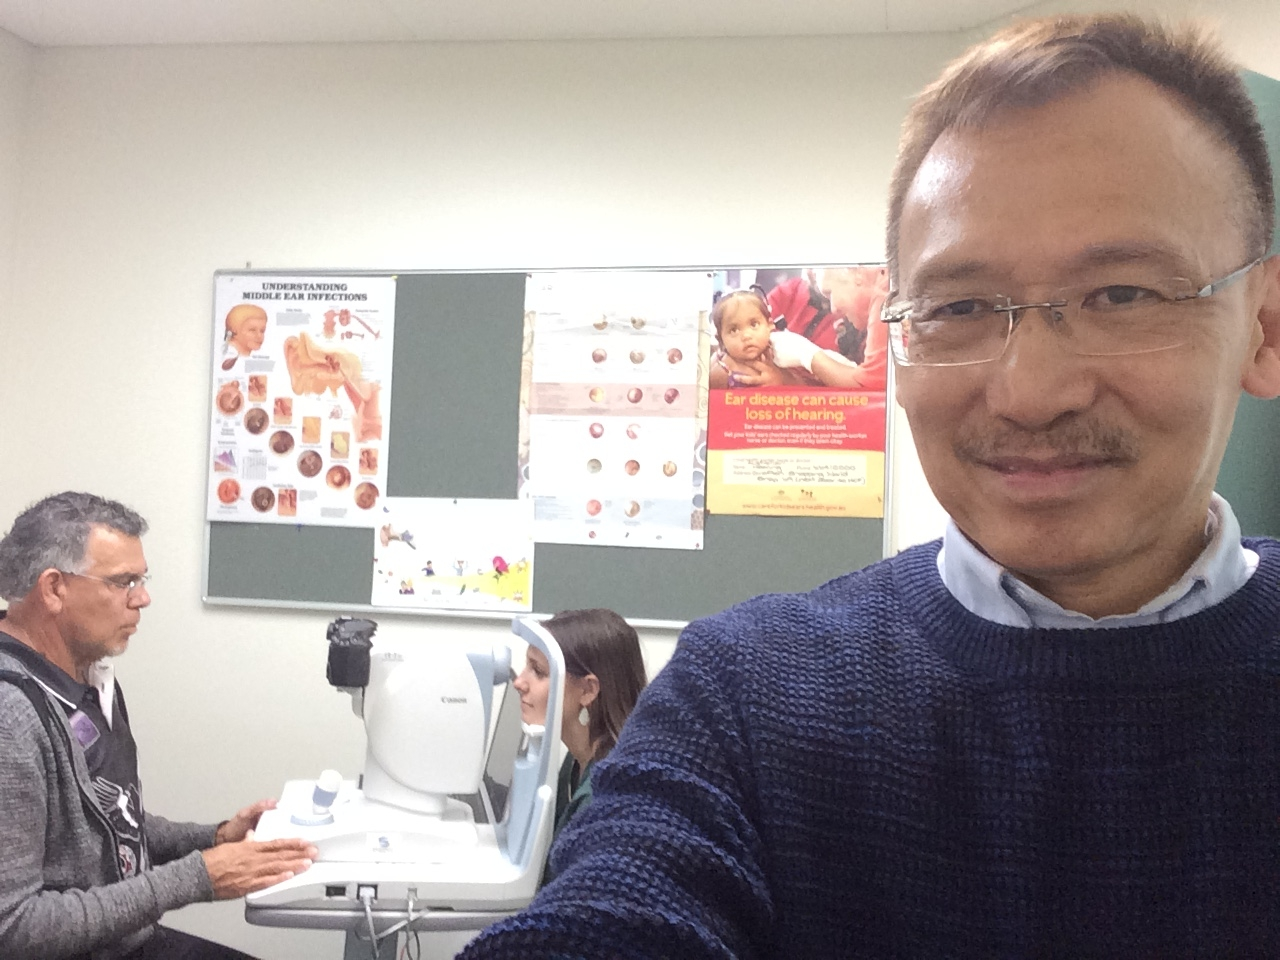 Mastering selfies with a cheeky smile - Vincent Ang (right) in the field.